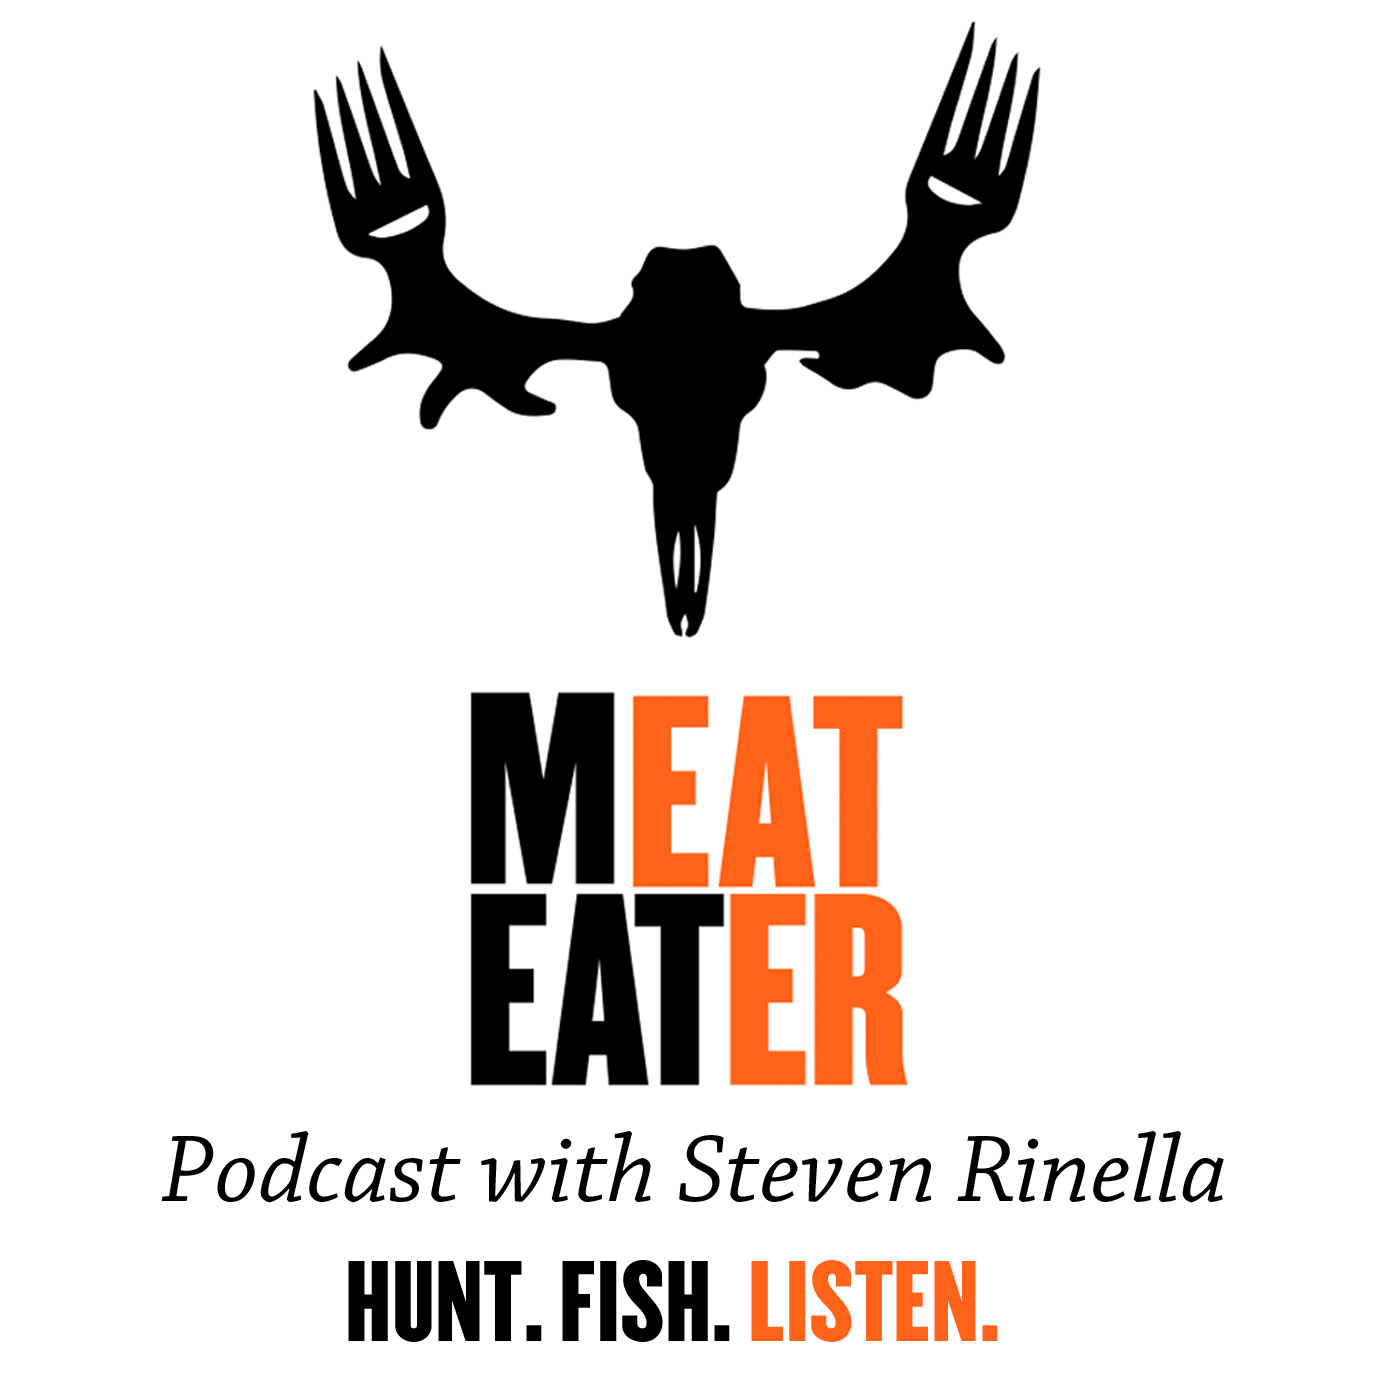 MeatEater Podcast logo